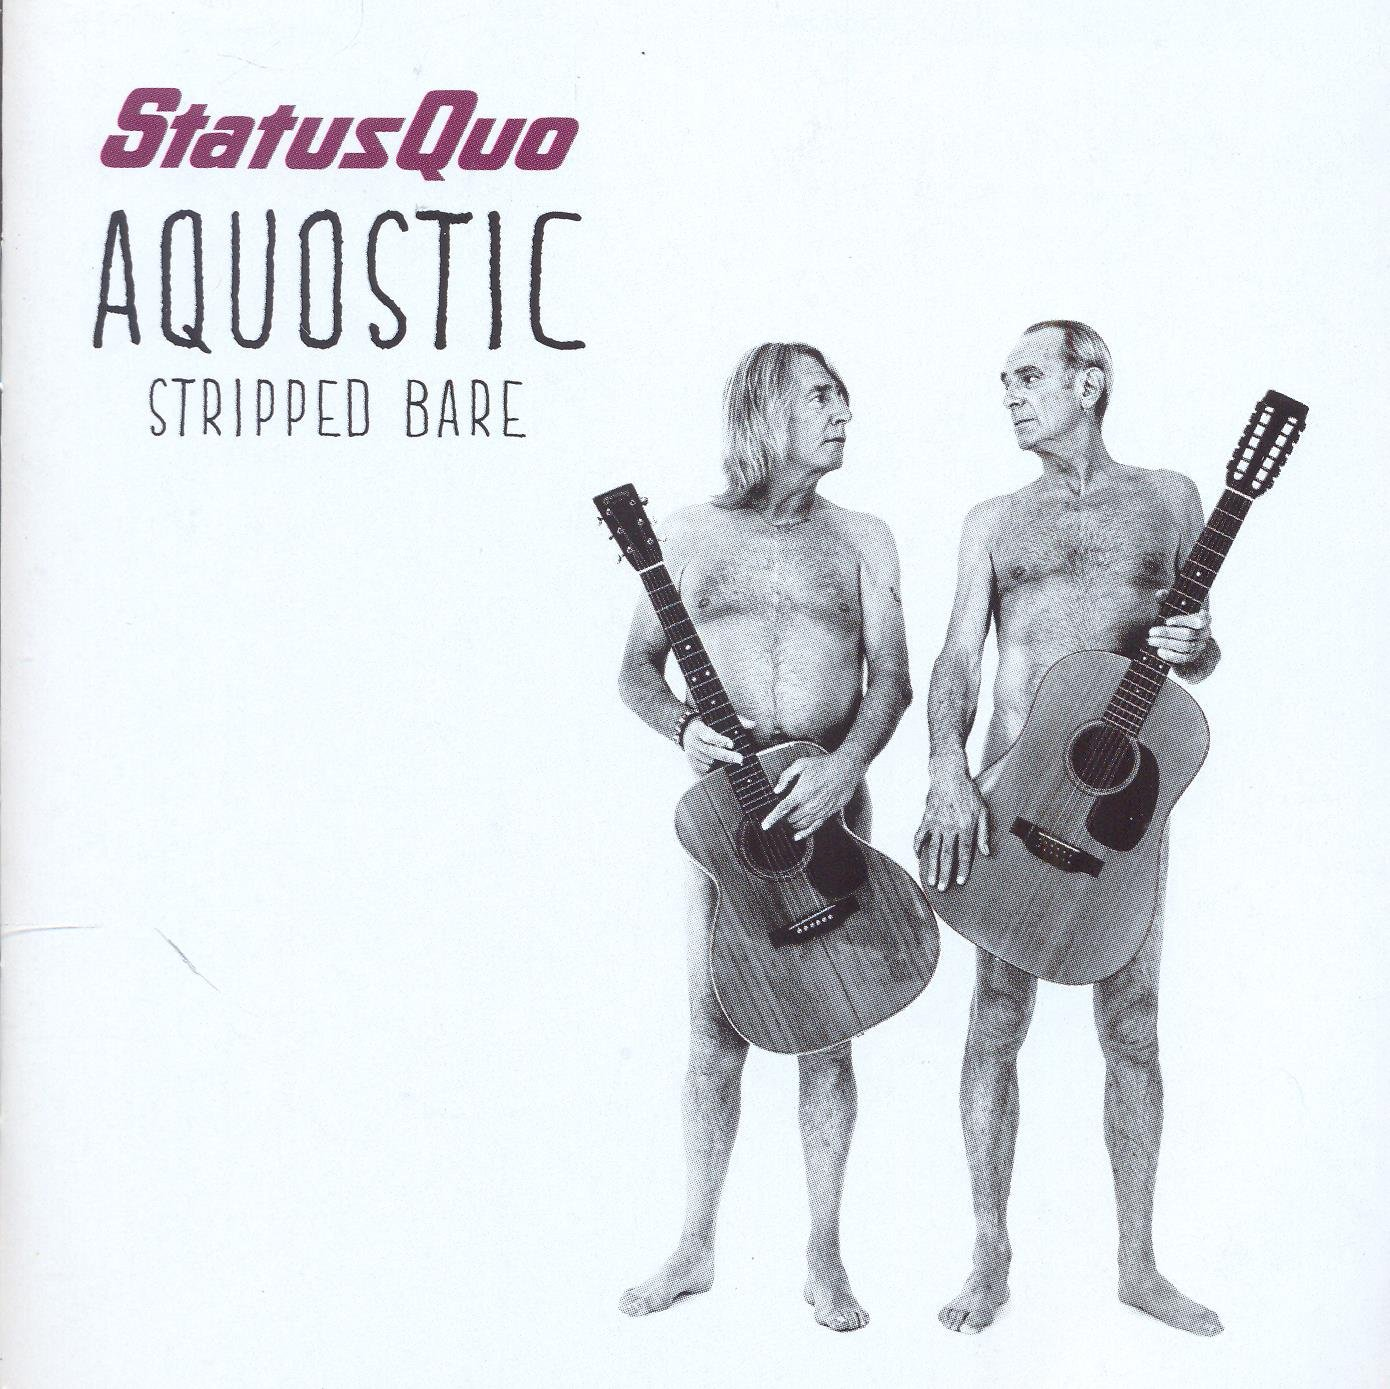 Aquostic / Stripped Bare                                                                                                                                                                                                                                                    <span class=